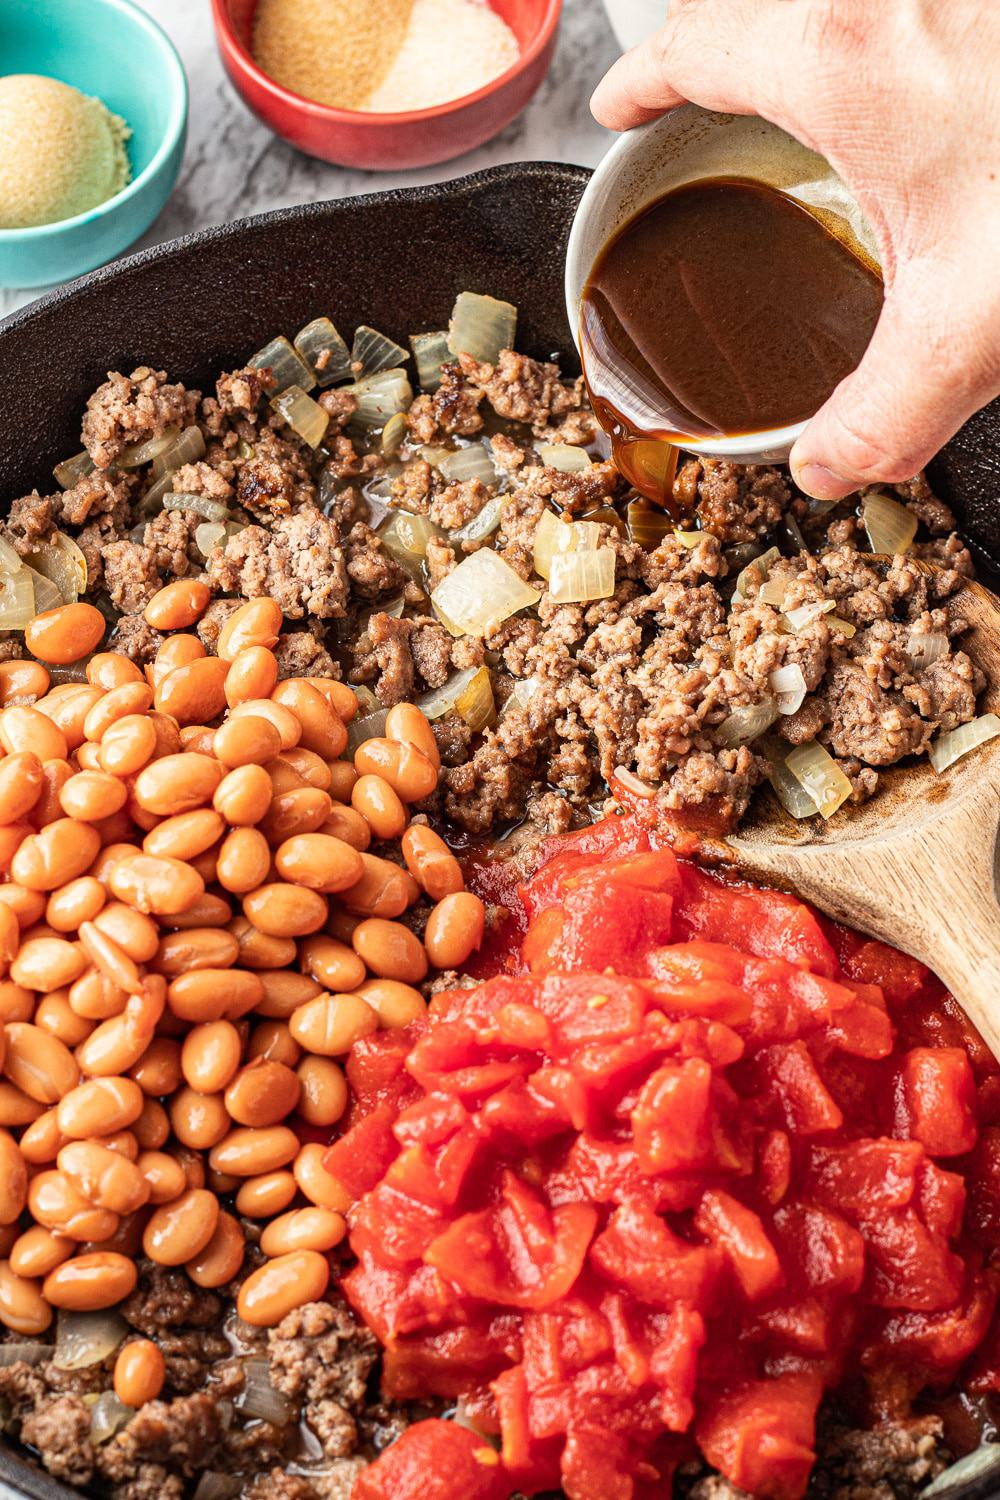 ground beef, tomatoes, and pinto beans cooked in a black frying pan.